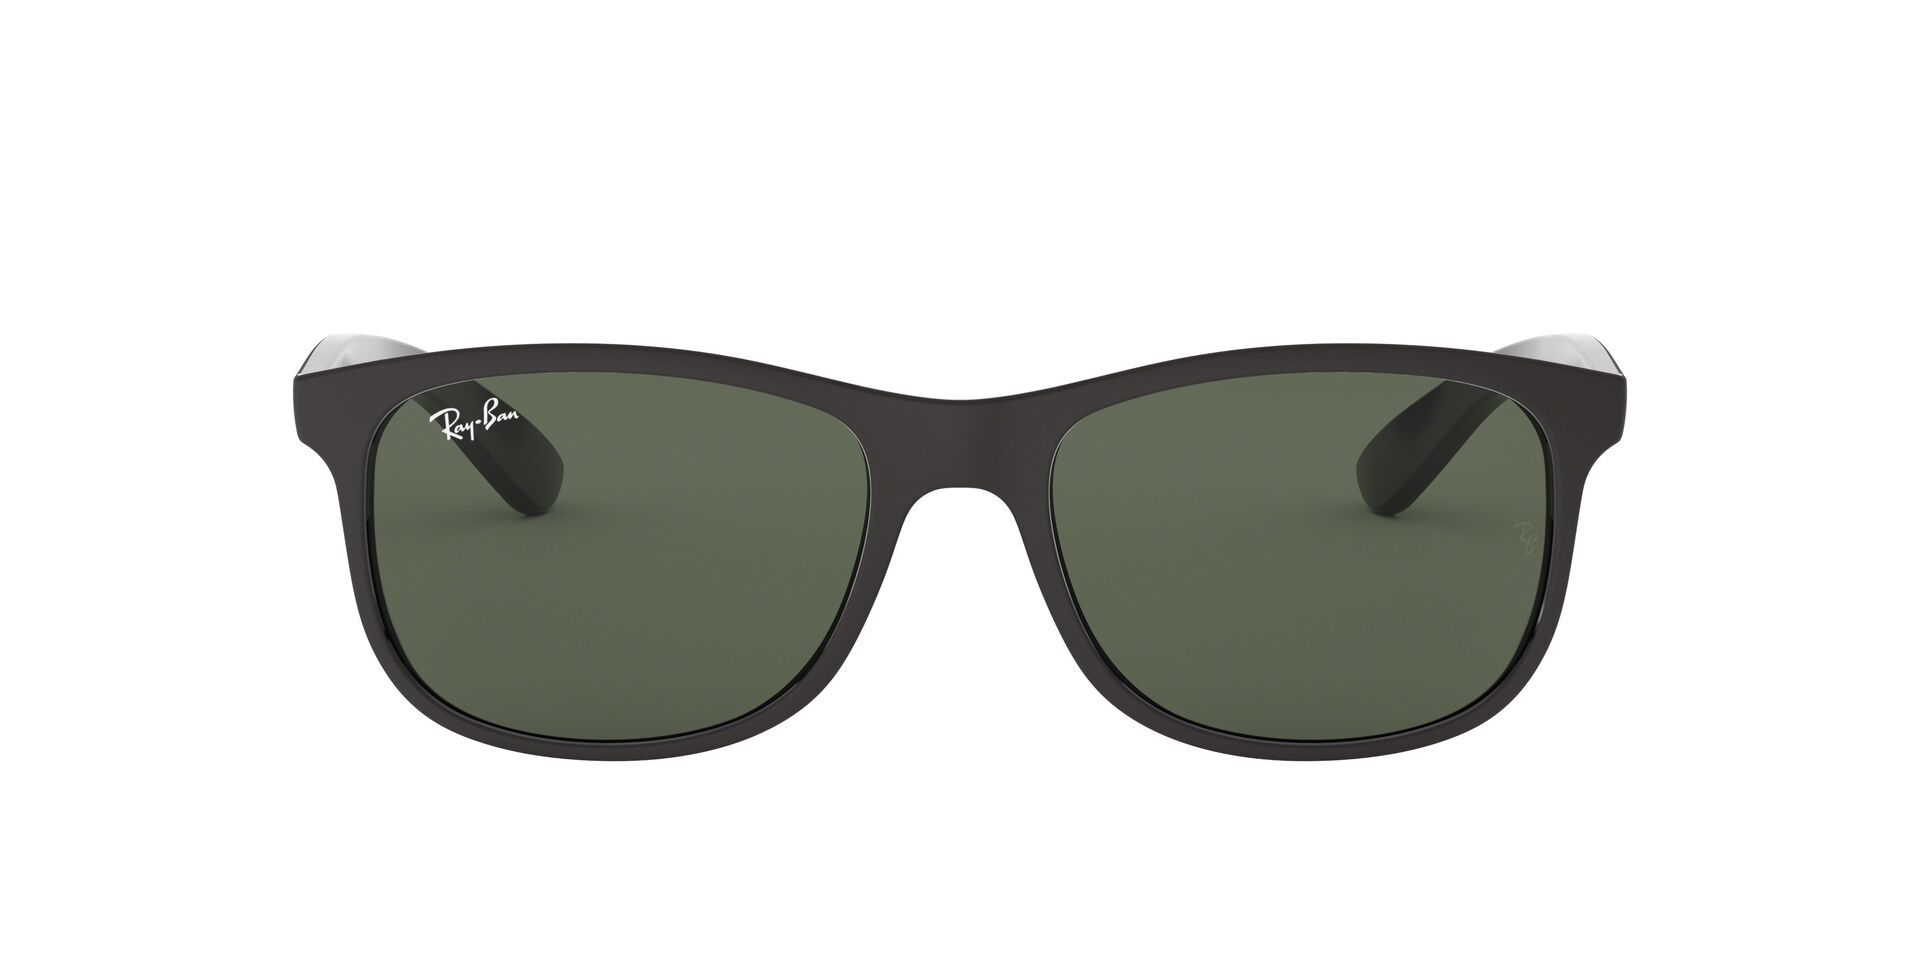 Ray Ban - RB4202 Black Oval Unisex Sunglasses - 55mm-Sunglasses-Designer Eyes